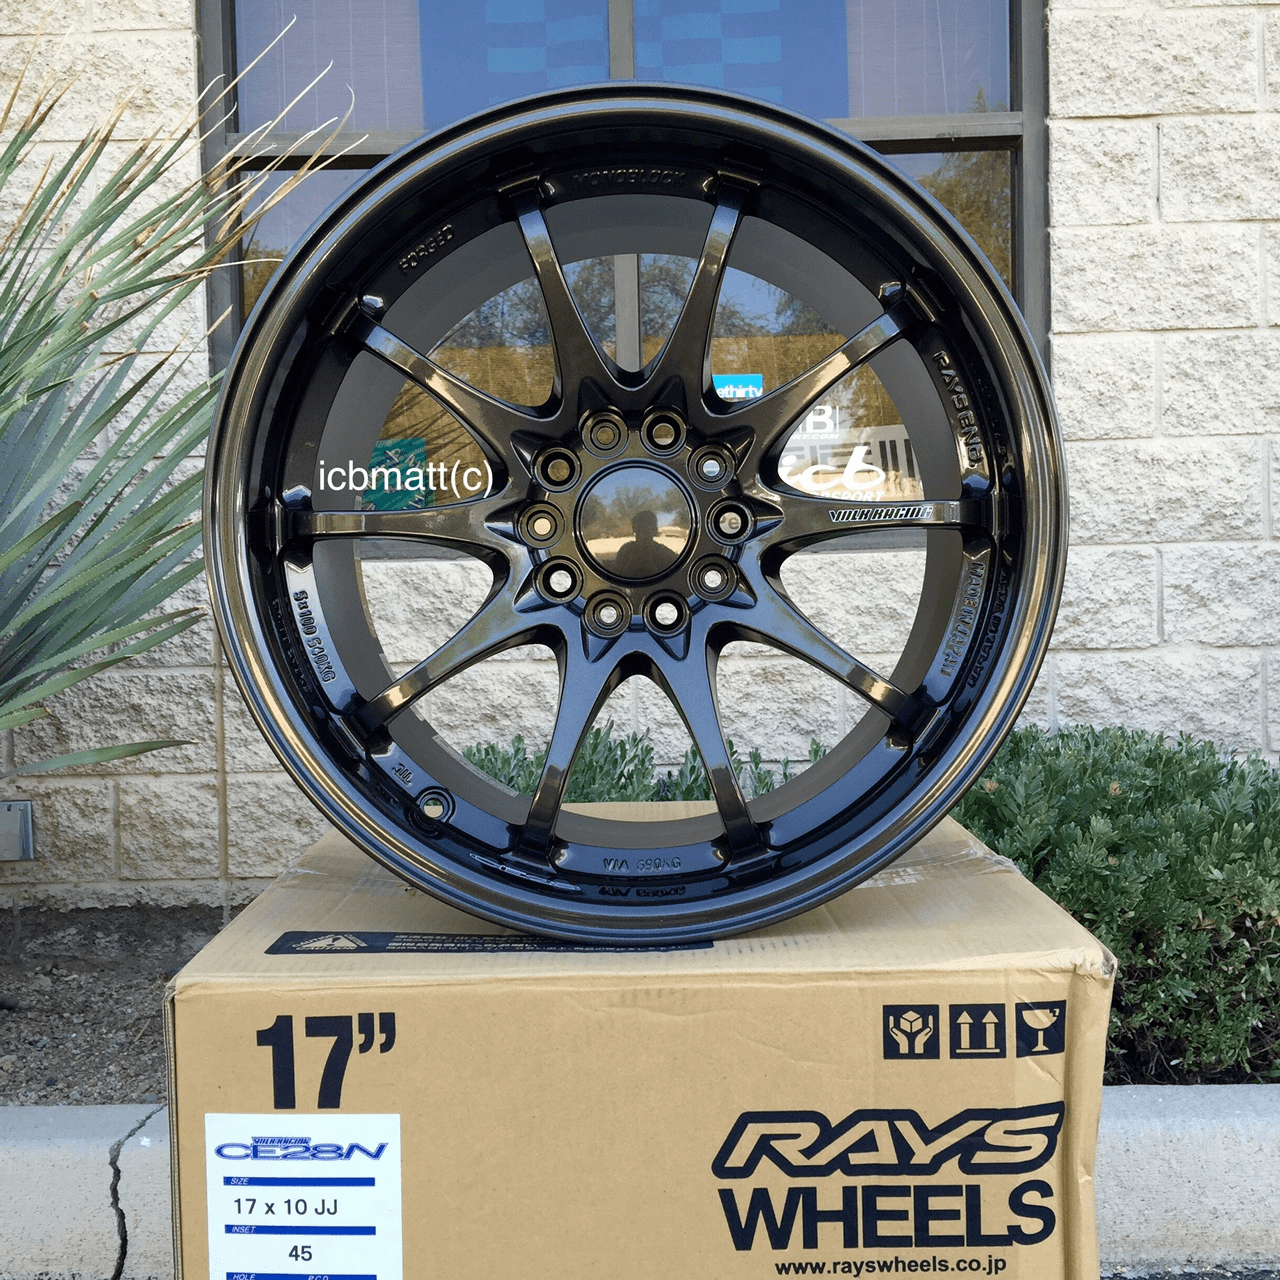 Rays Volk Racing CE28N Diamond Black Wheels Set 5X114.3 17X10 +45 Offset Concave Face Sold